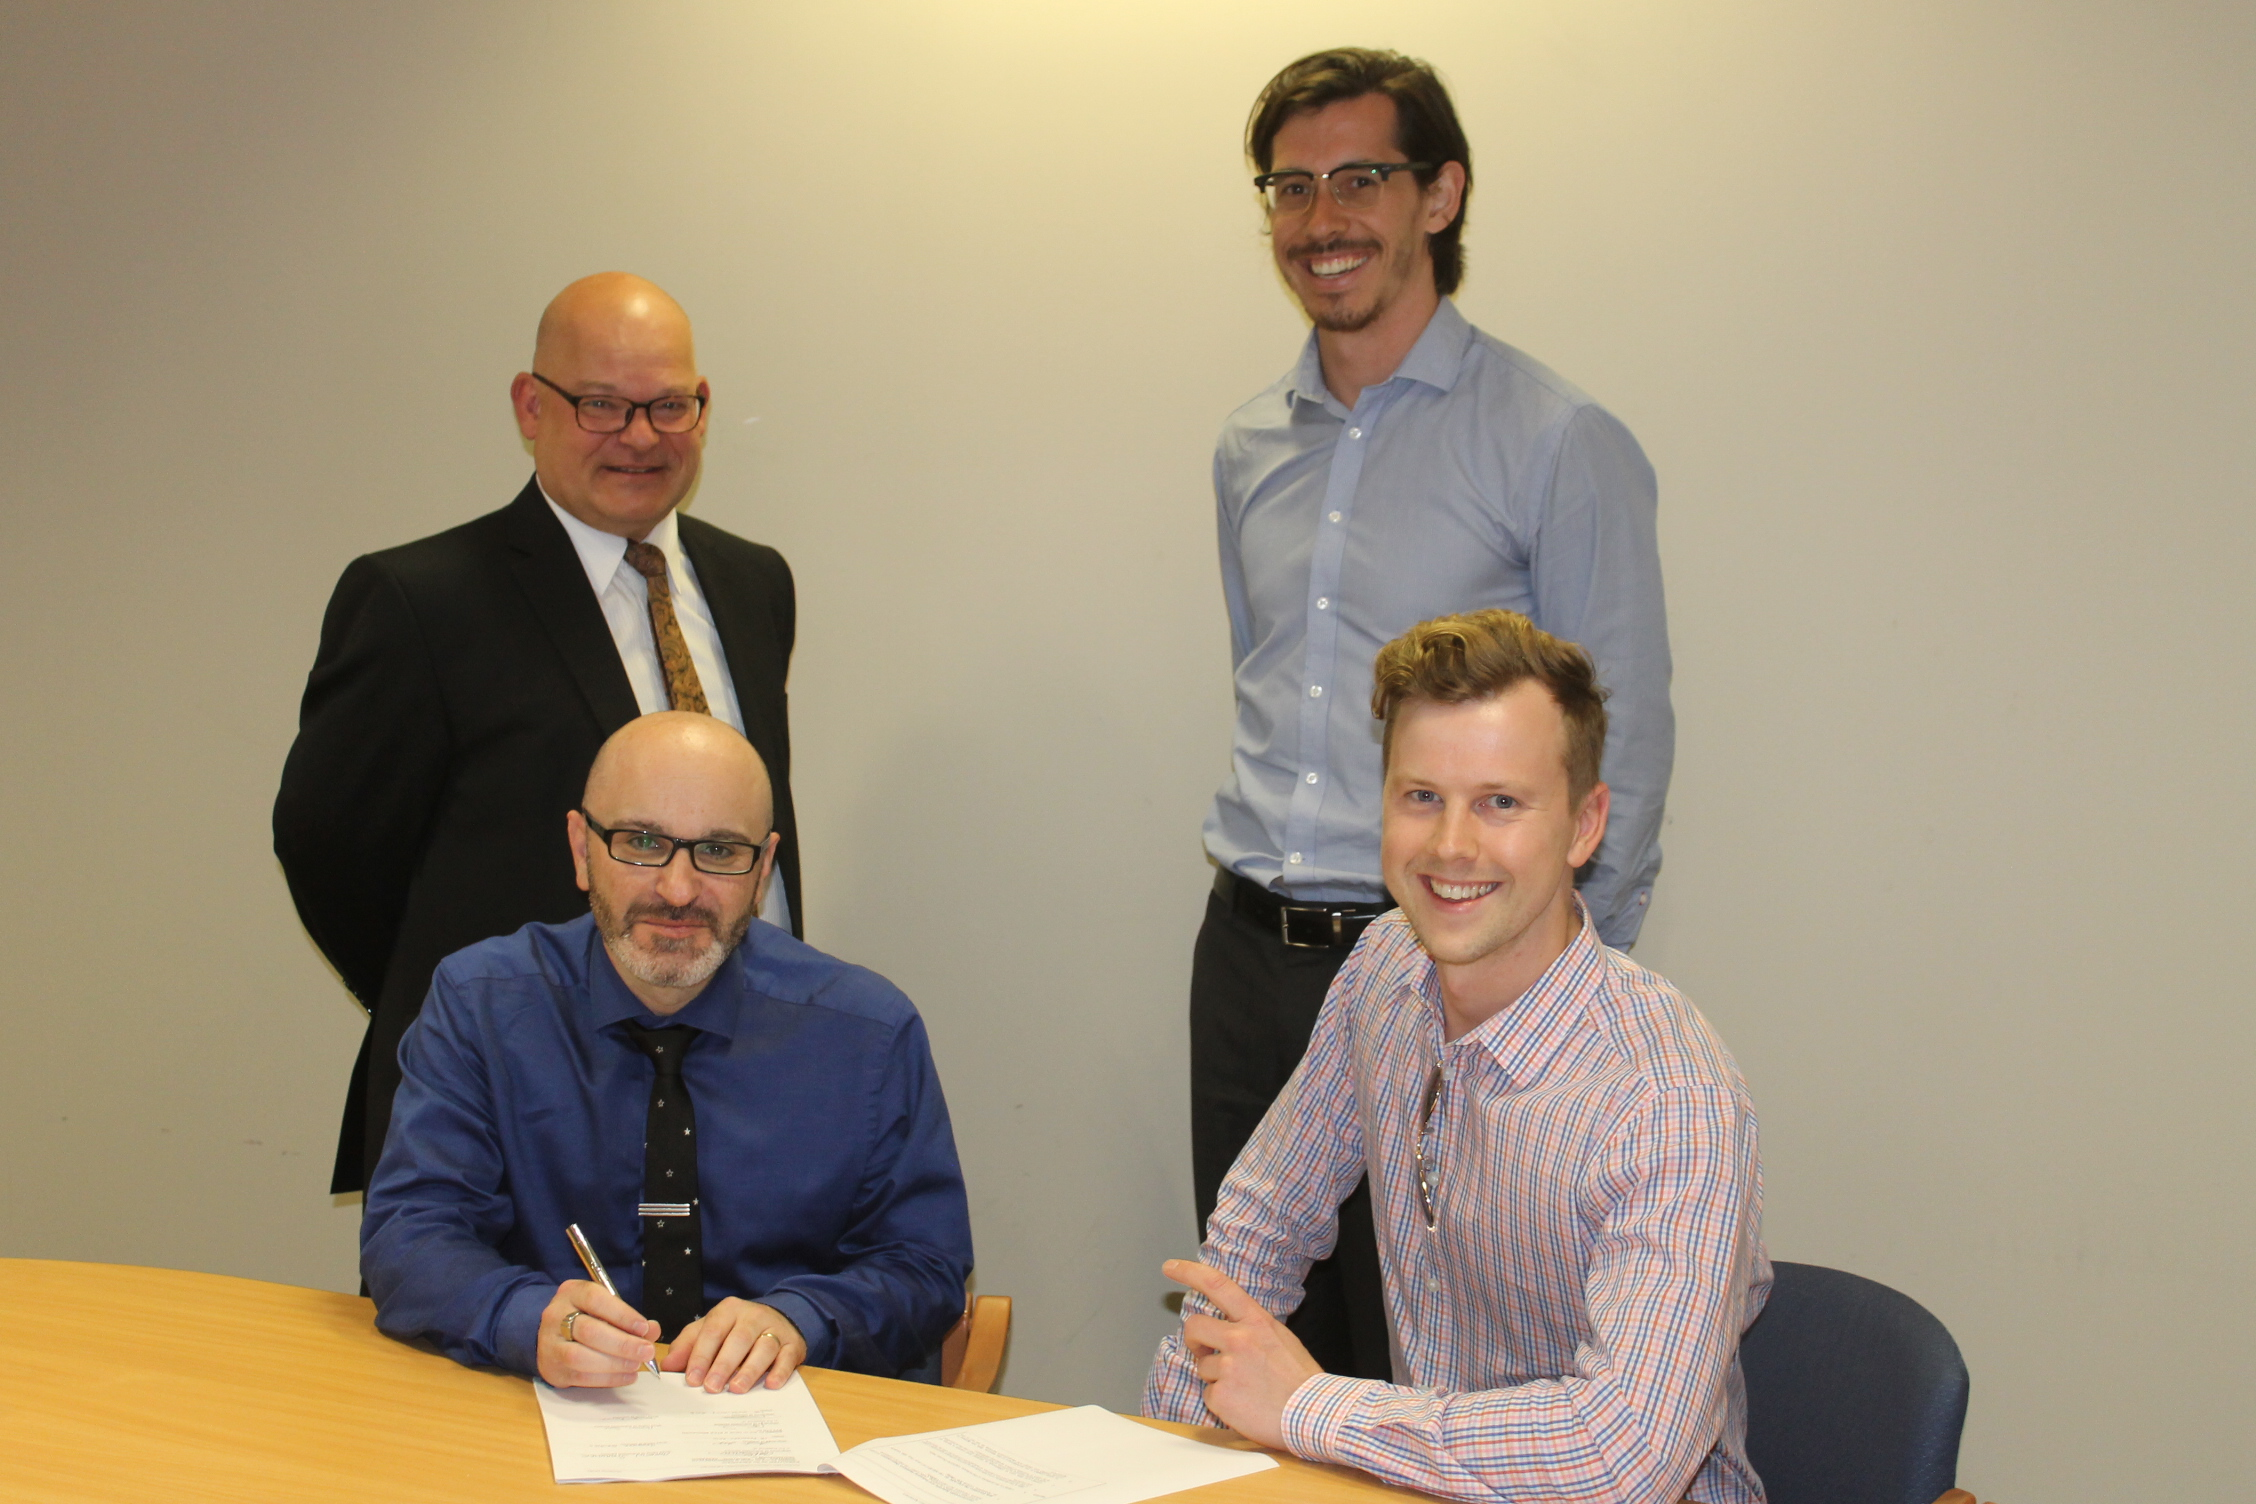 CSIRO's Andrew Stammer and Marcus Zipper signing the agreement with Byron Scaf and Daniel Pikler from Stile Education.